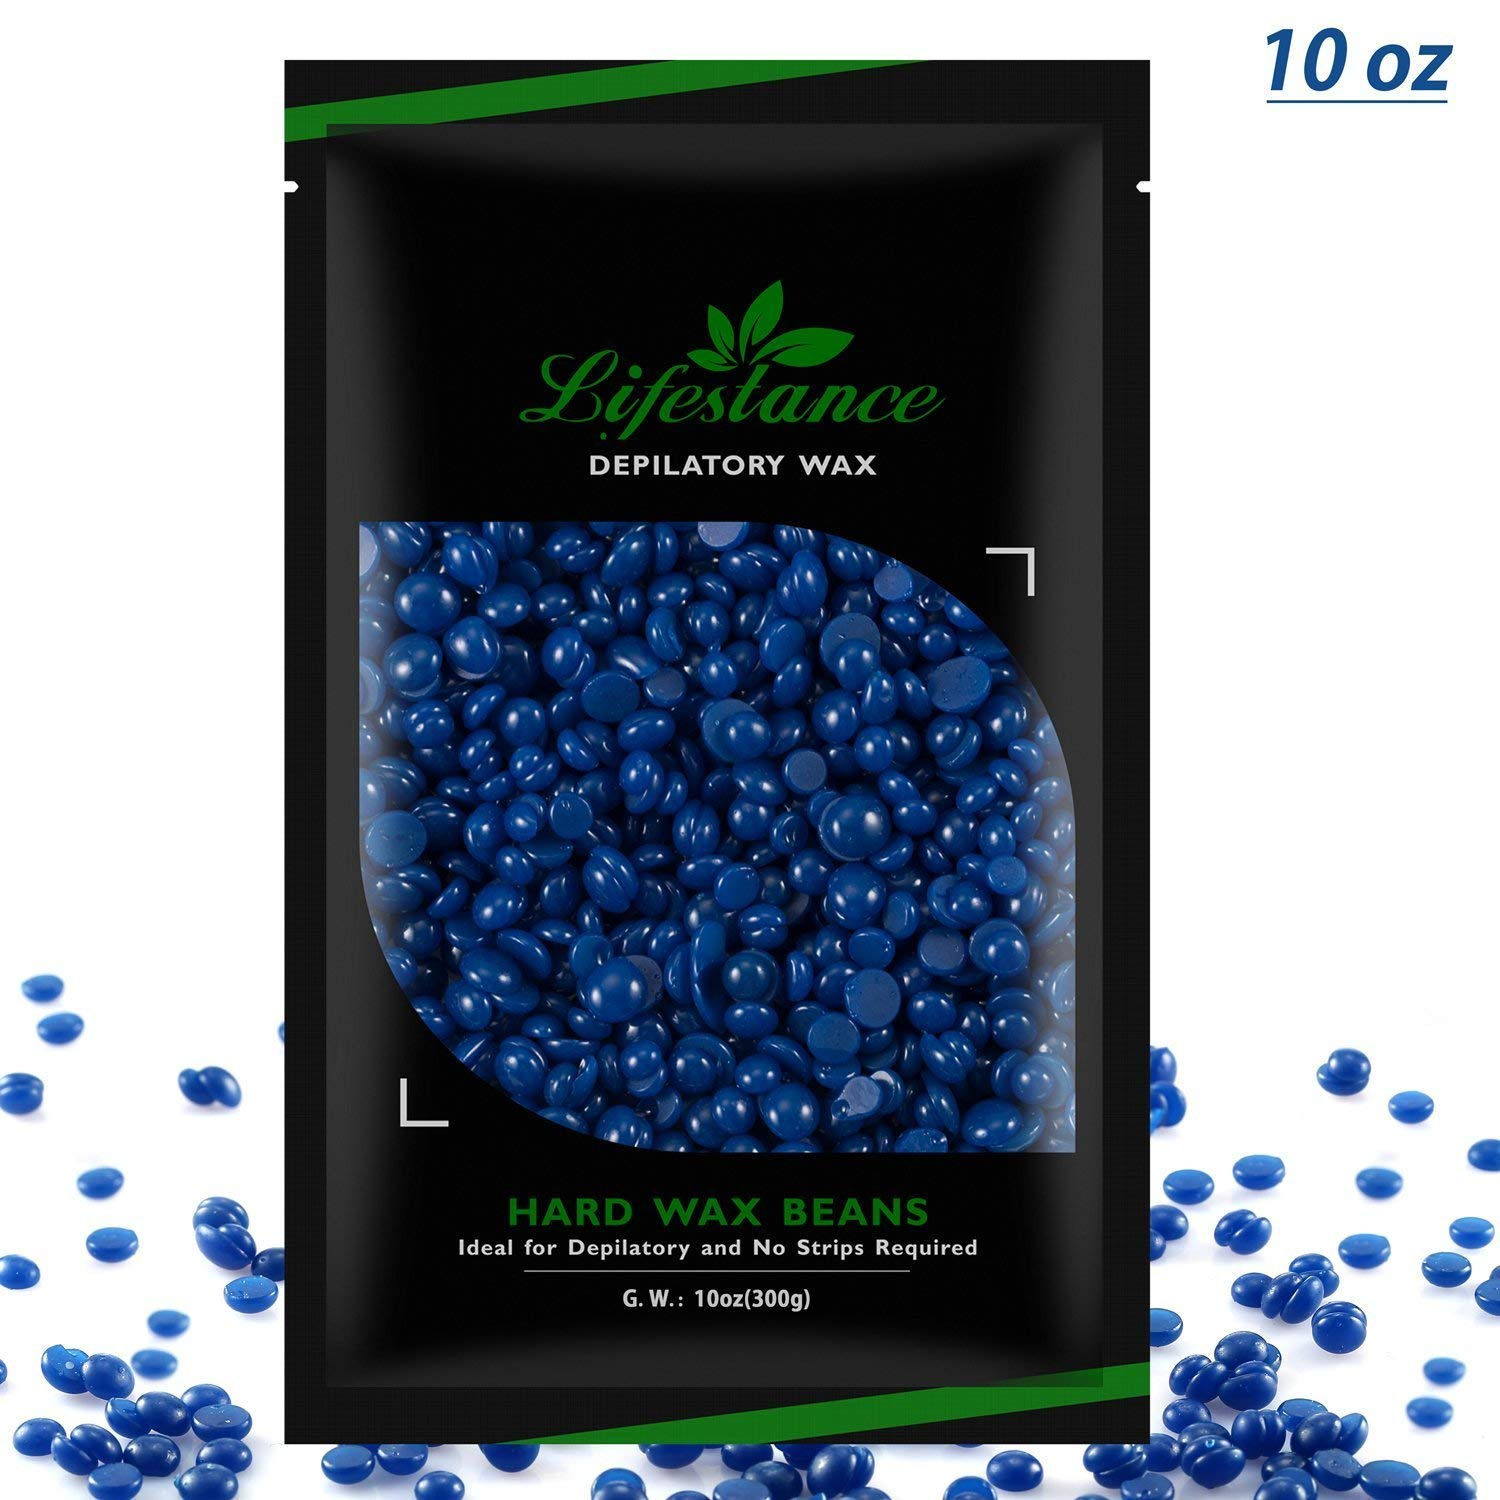 Lifestance Hard Wax Beans Hair Removal Stripless Full Body Depilatory Wax Beads For Chest Underarms Legs Eyebrow Brazilian Bikini Upper Lip Face Body 300g 10oz Chamomile Walmart Com Walmart Com